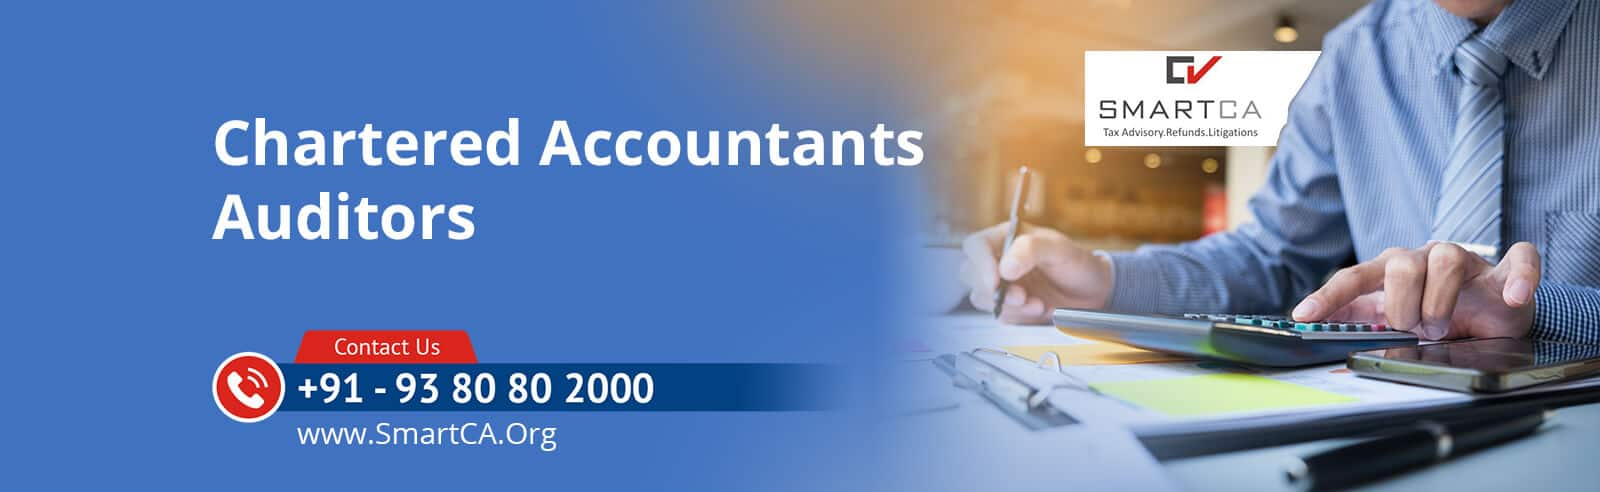 Auditors in Chennai Perungudi